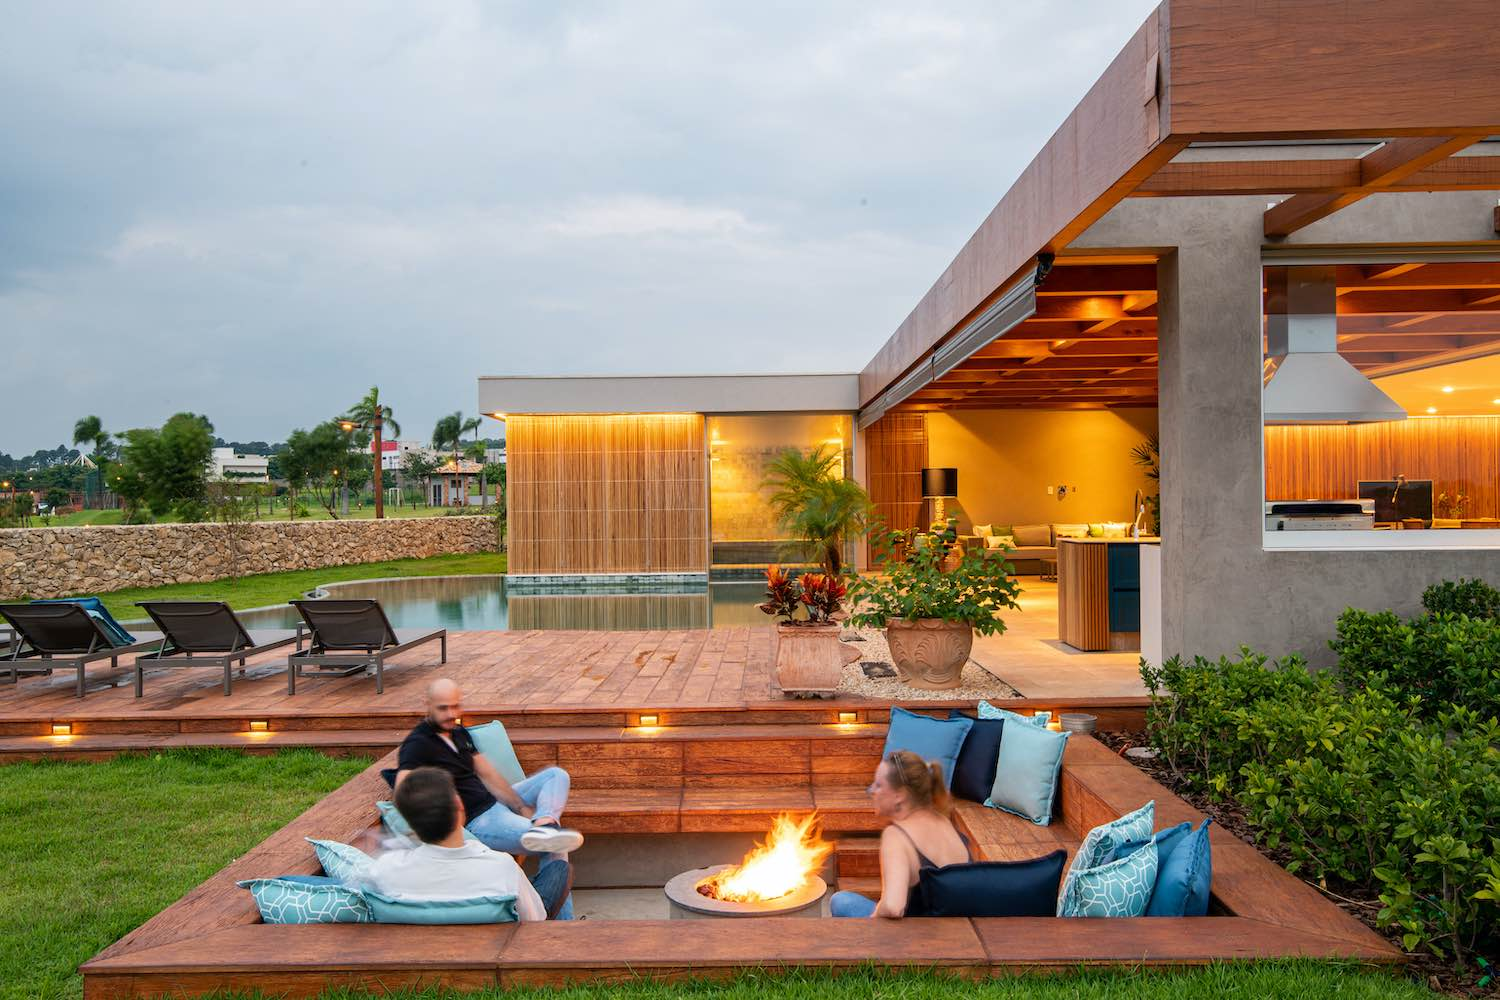 family sitting by fire at outdoor living space with pool view